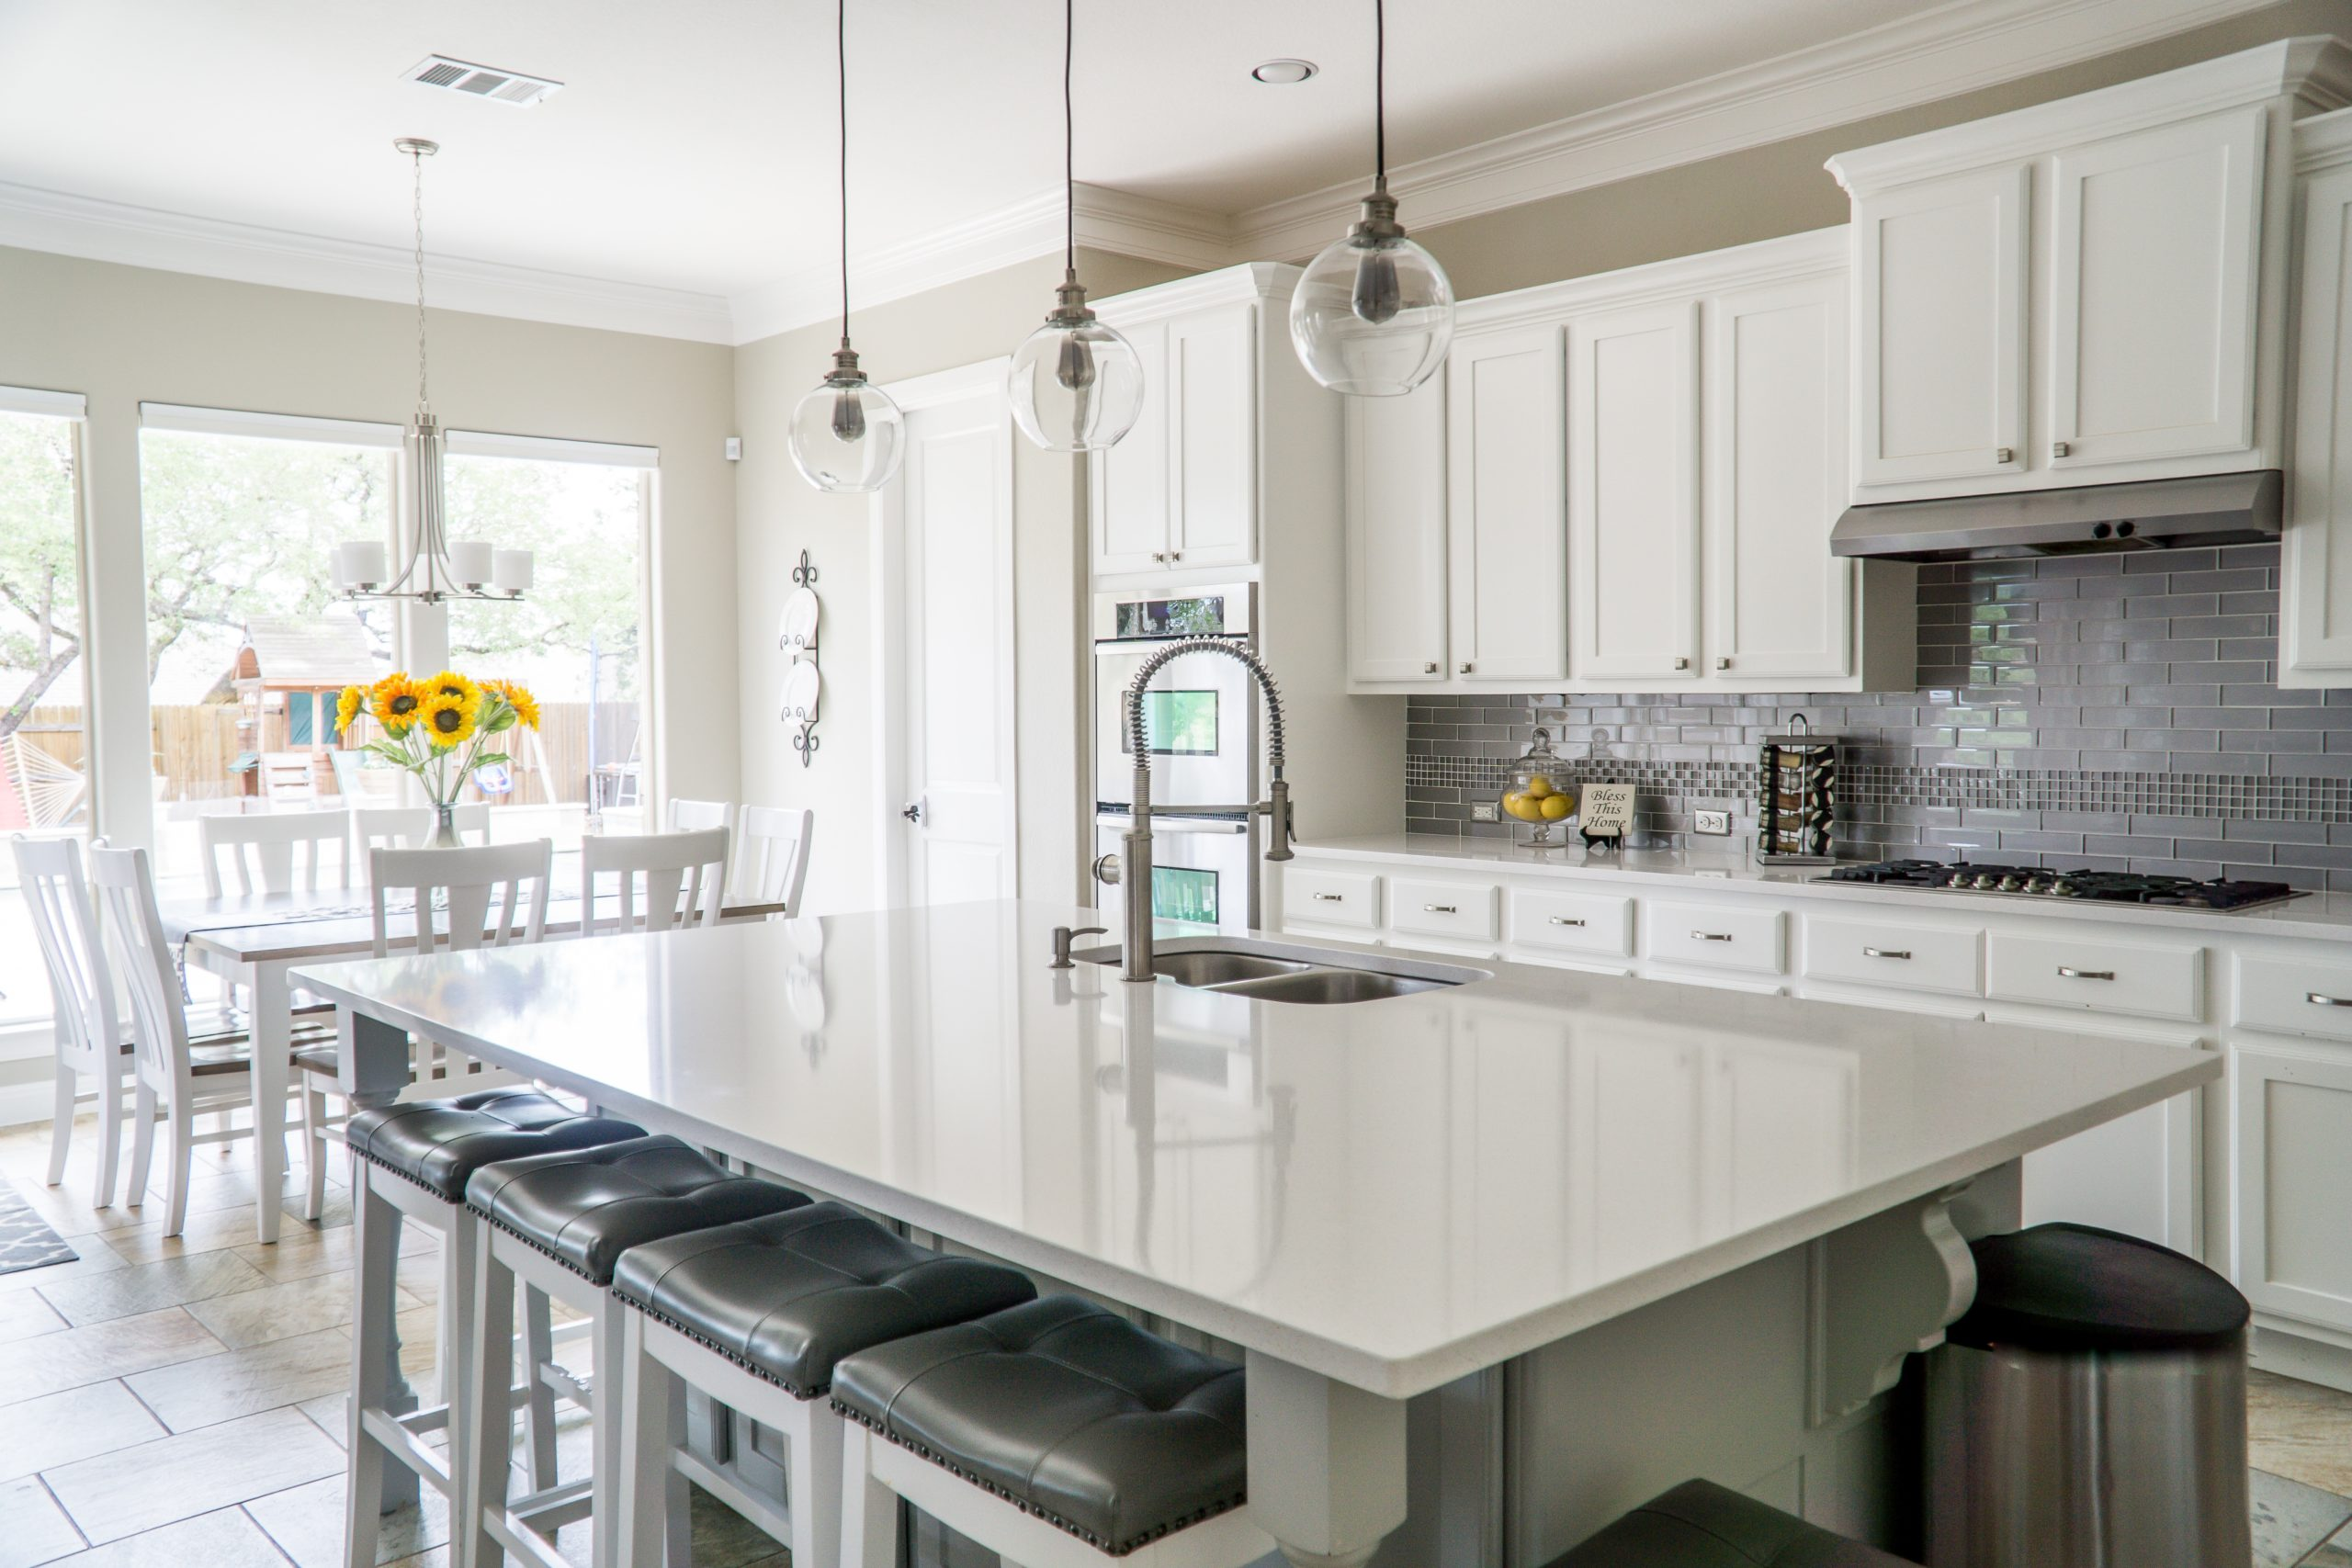 How to Choose Kitchen Islands for Your Renovation